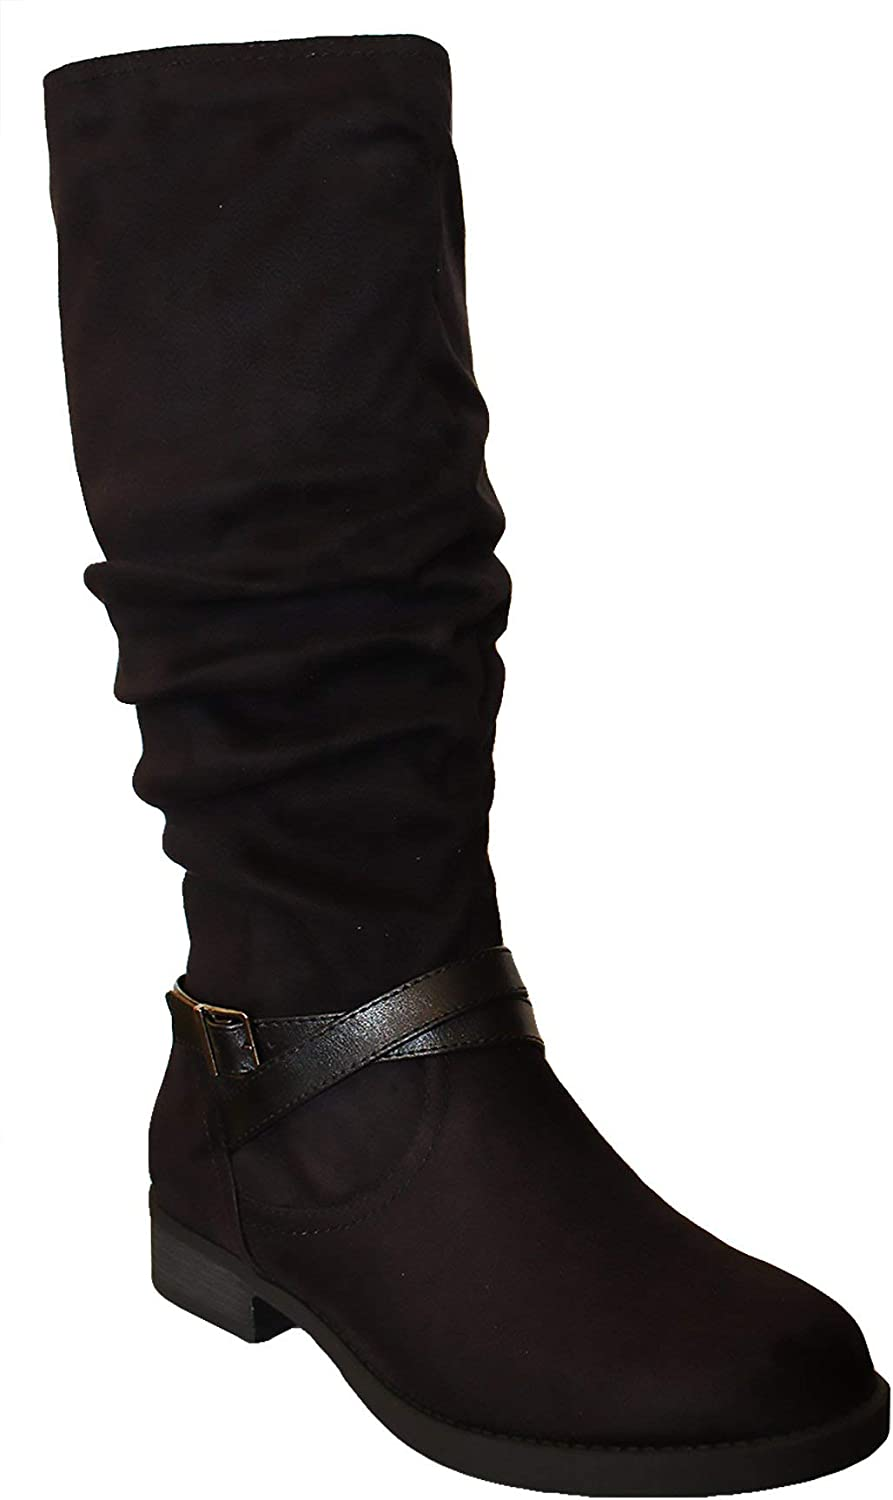 Soda Dale Women's Fashion Cozy Suede Fold Over Mid Calf Slouch Boots with Buckle